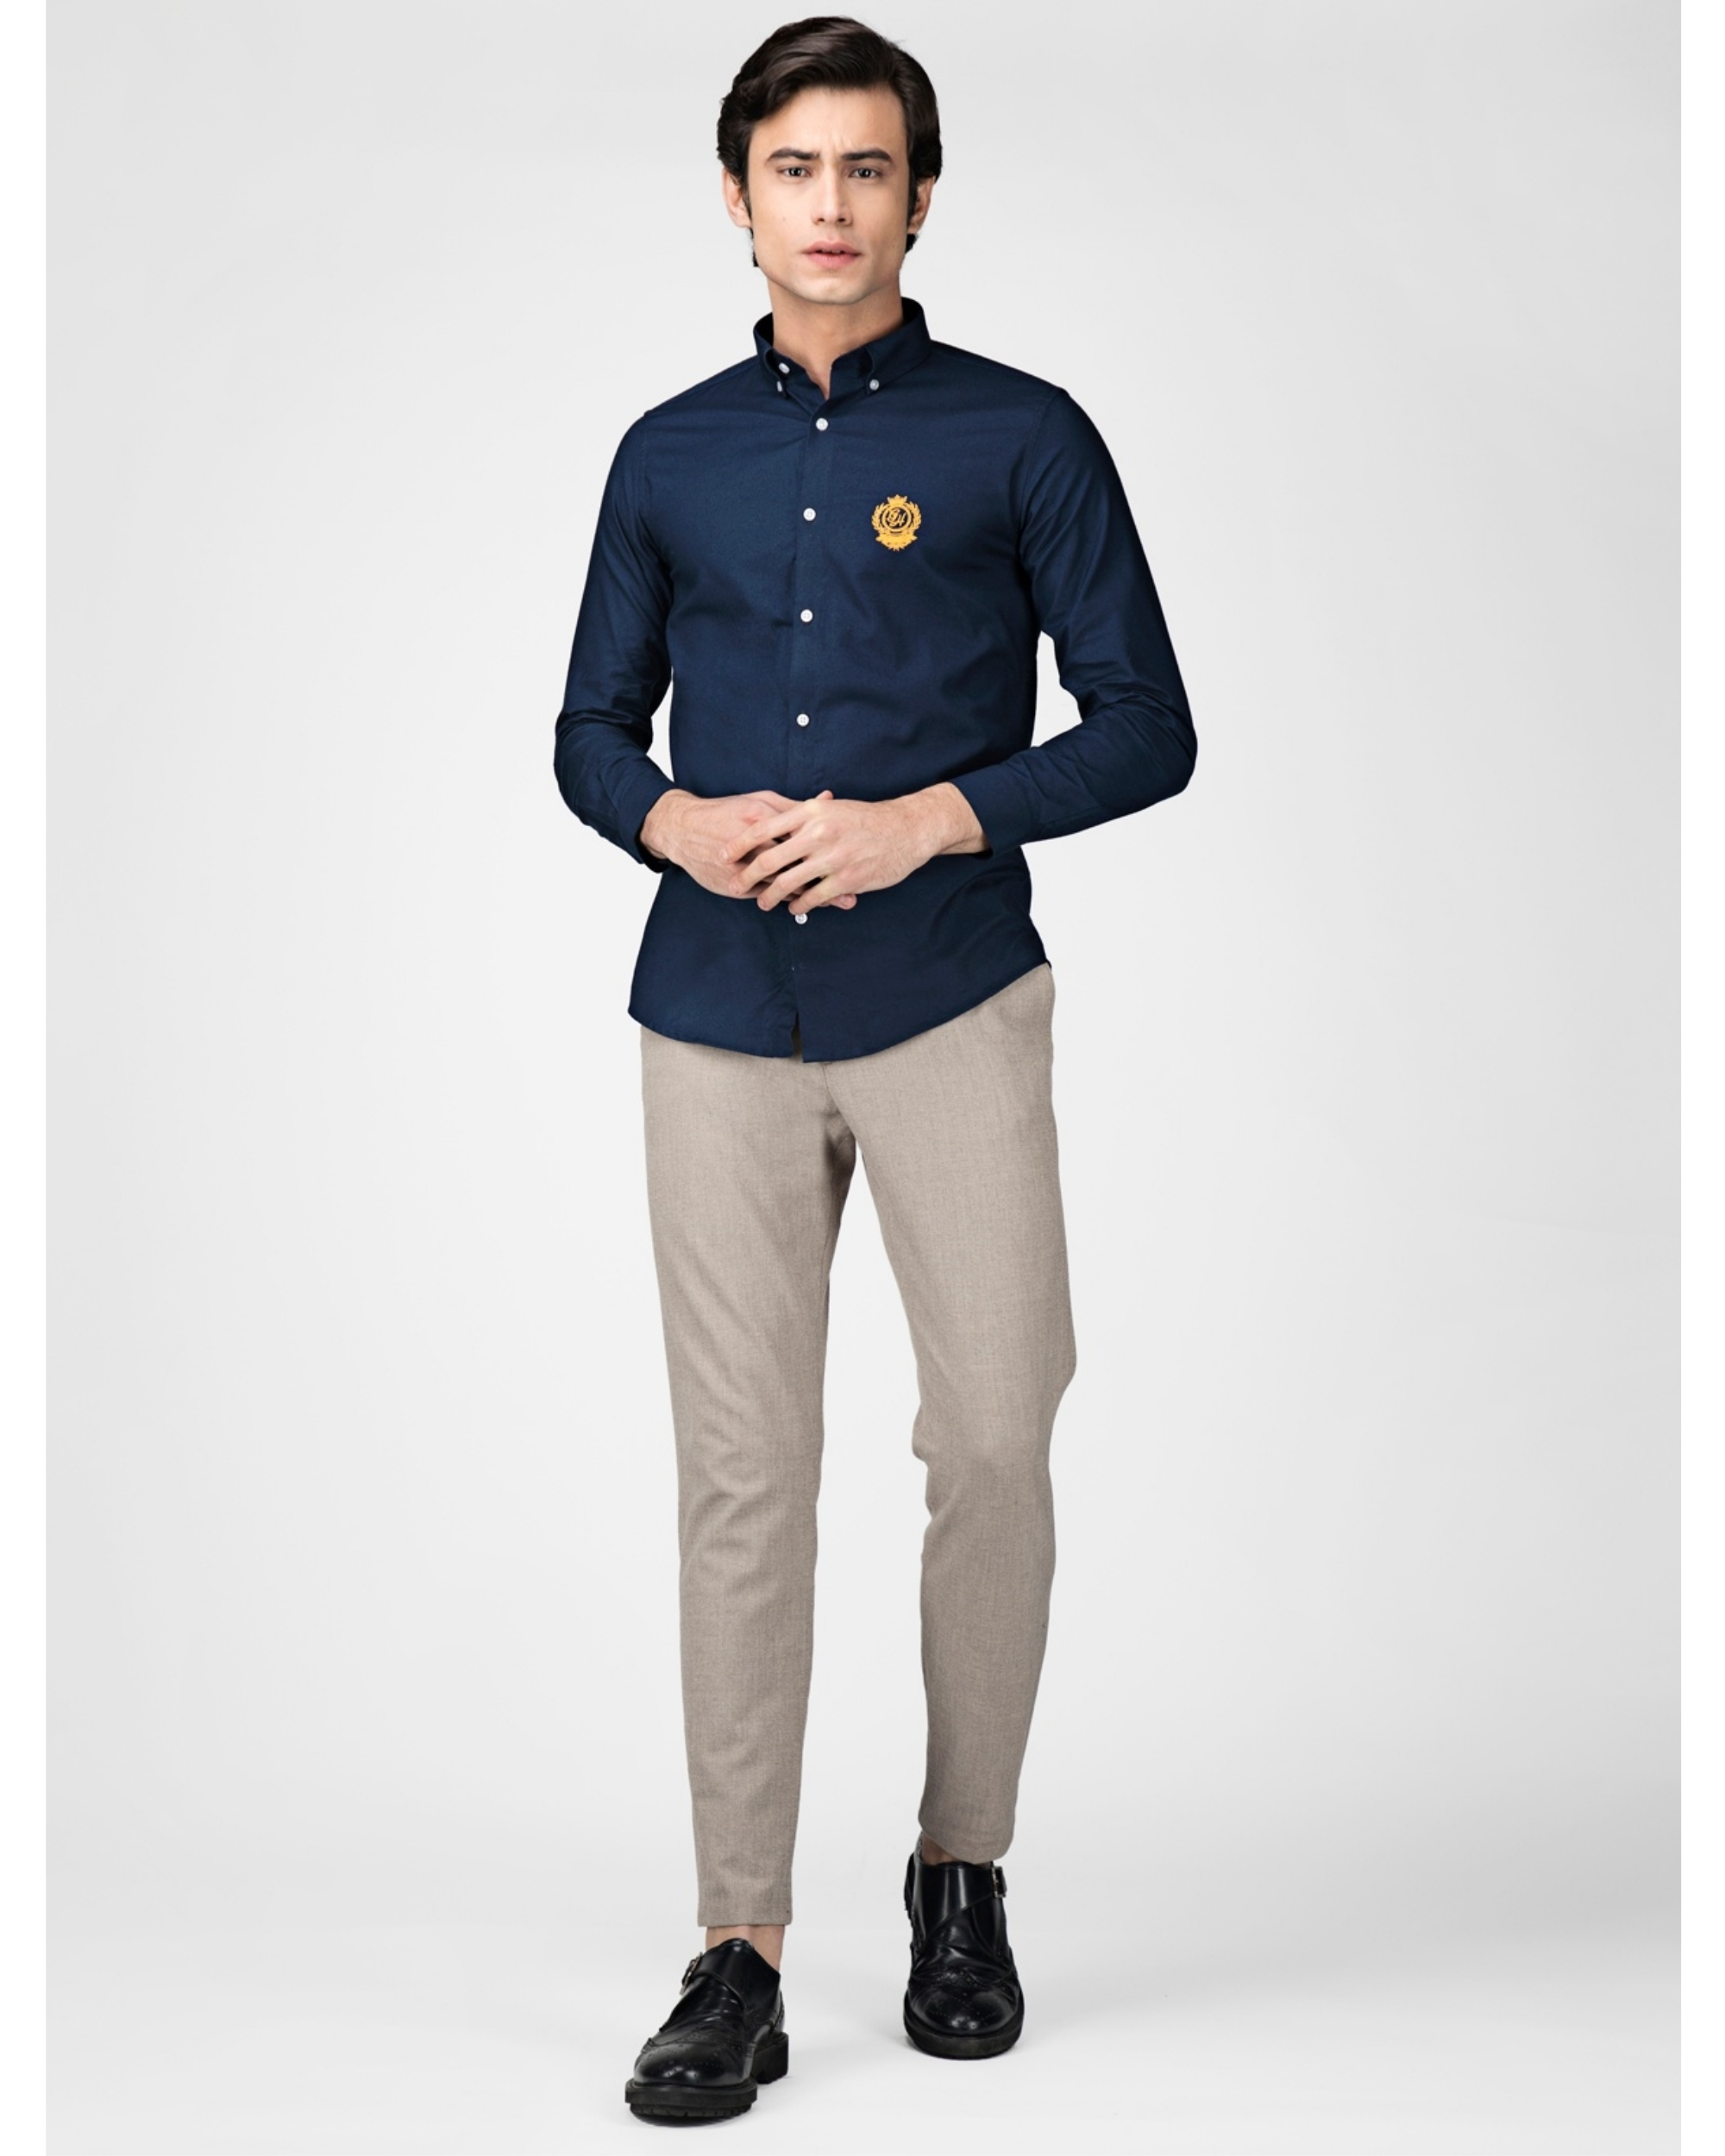 Royal blue oxford embroidered shirt